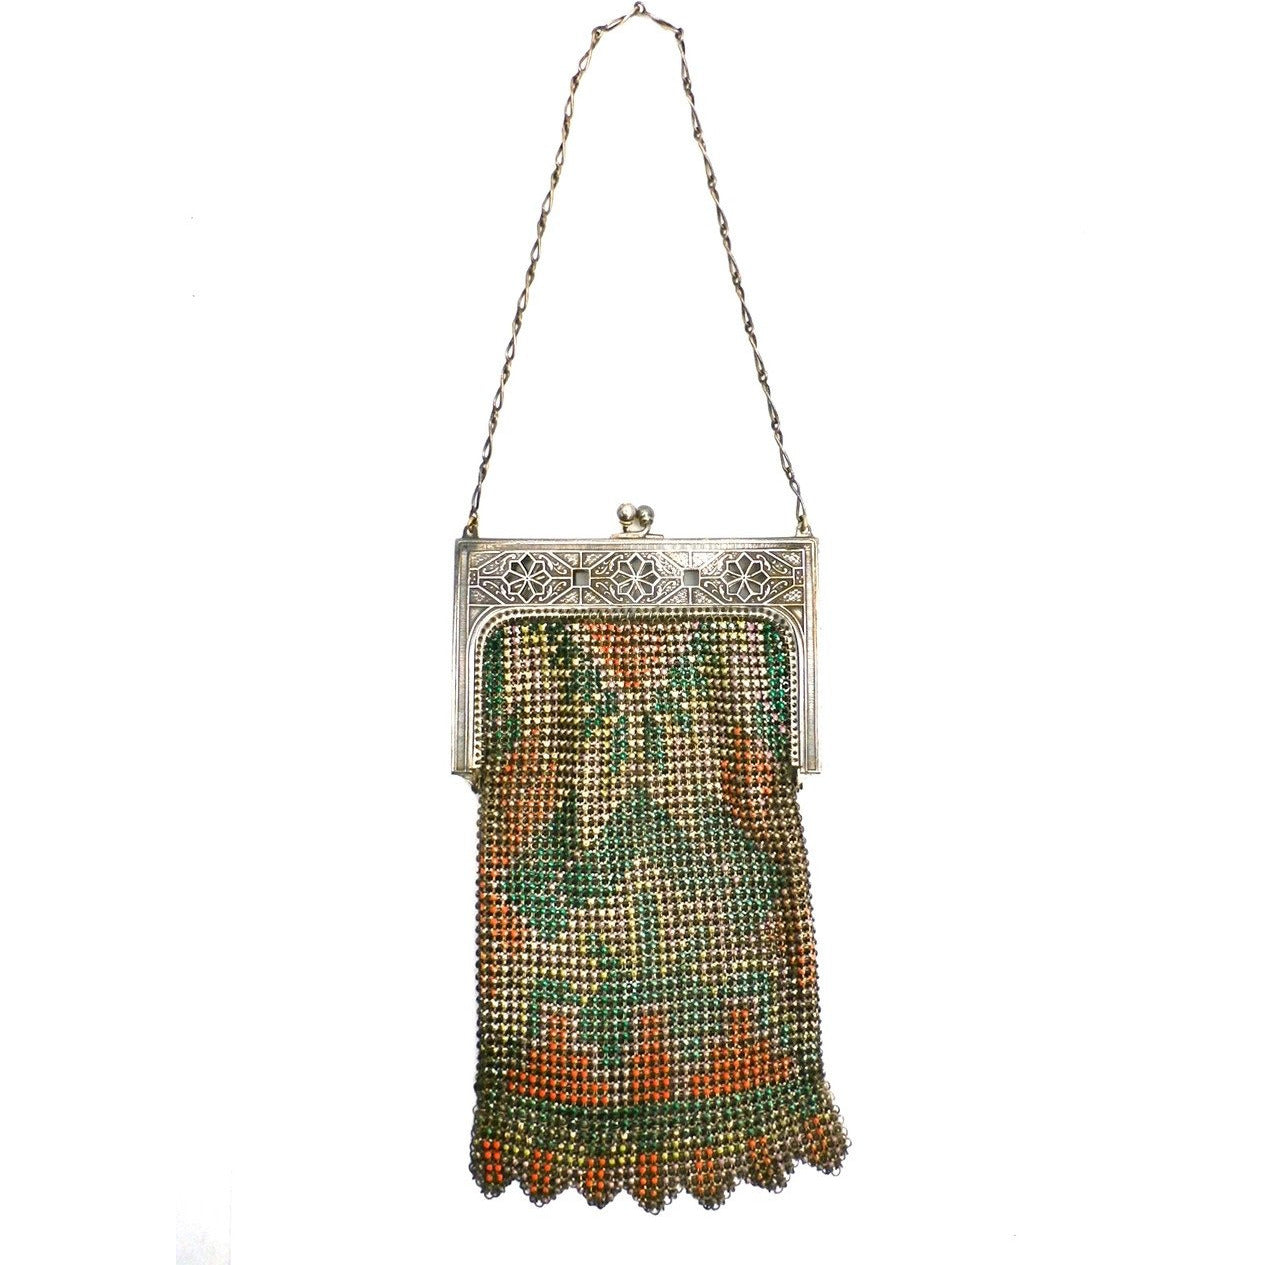 Vintage Purse Art Deco Whiting & Davis Enameled Mesh Purse 1920S Orange Pink Green - The Best Vintage Clothing  - 1